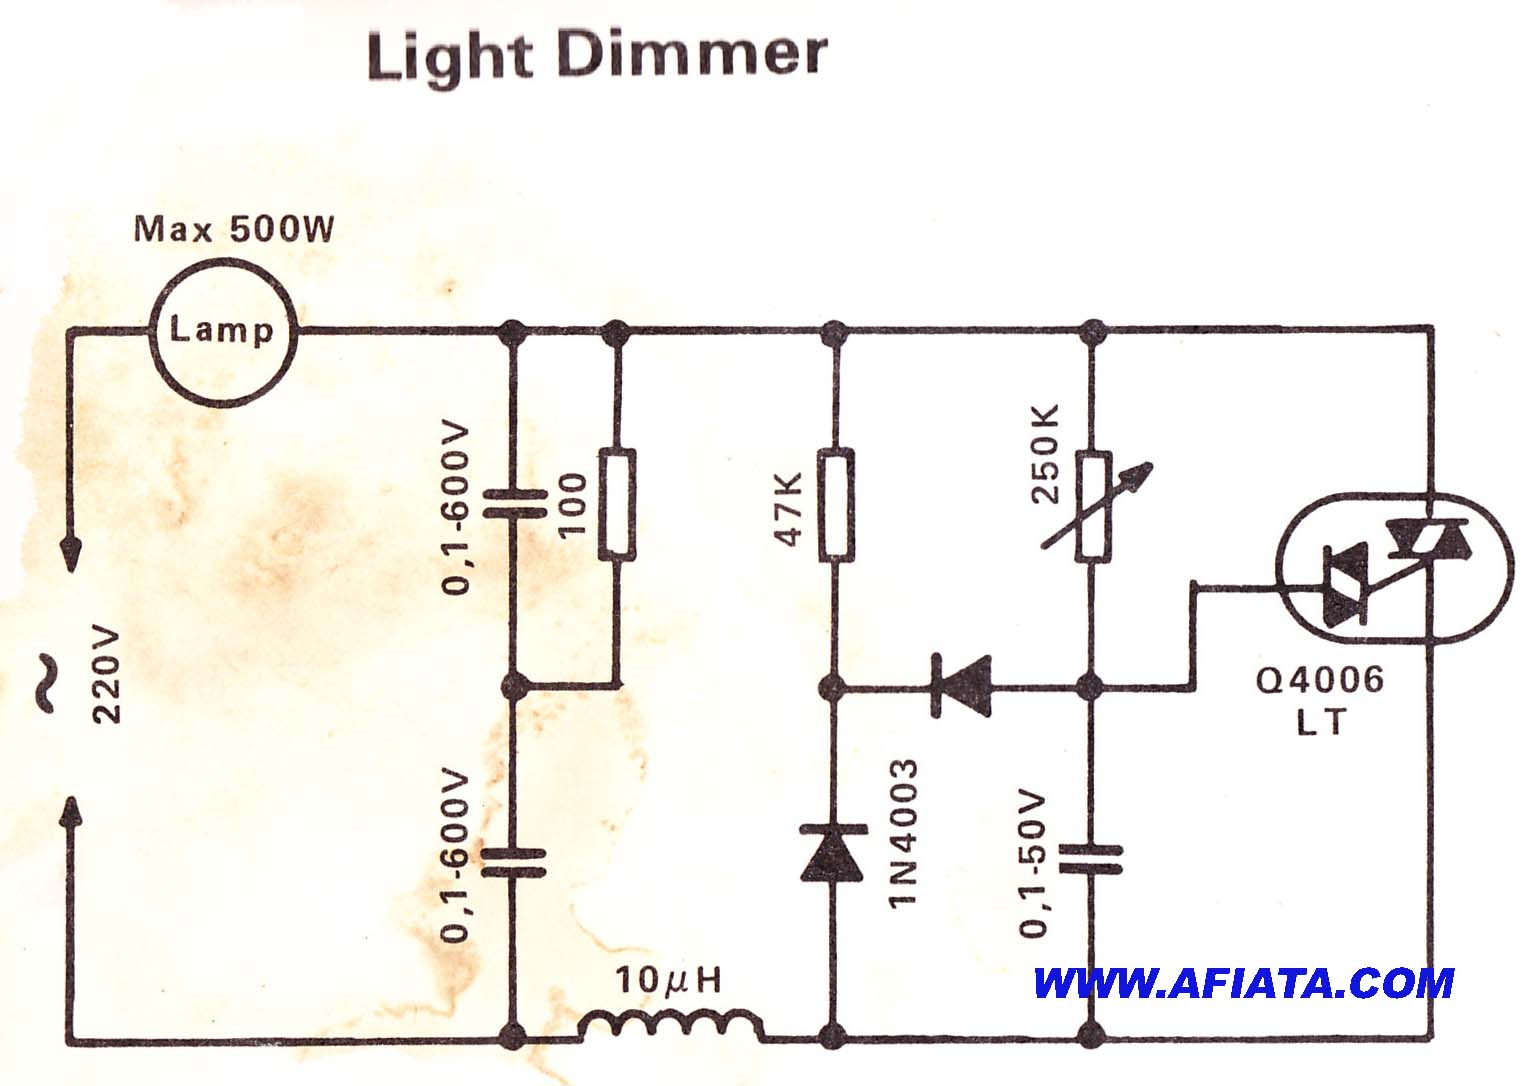 Image Showing A Simple Lighting Circuit Diagram